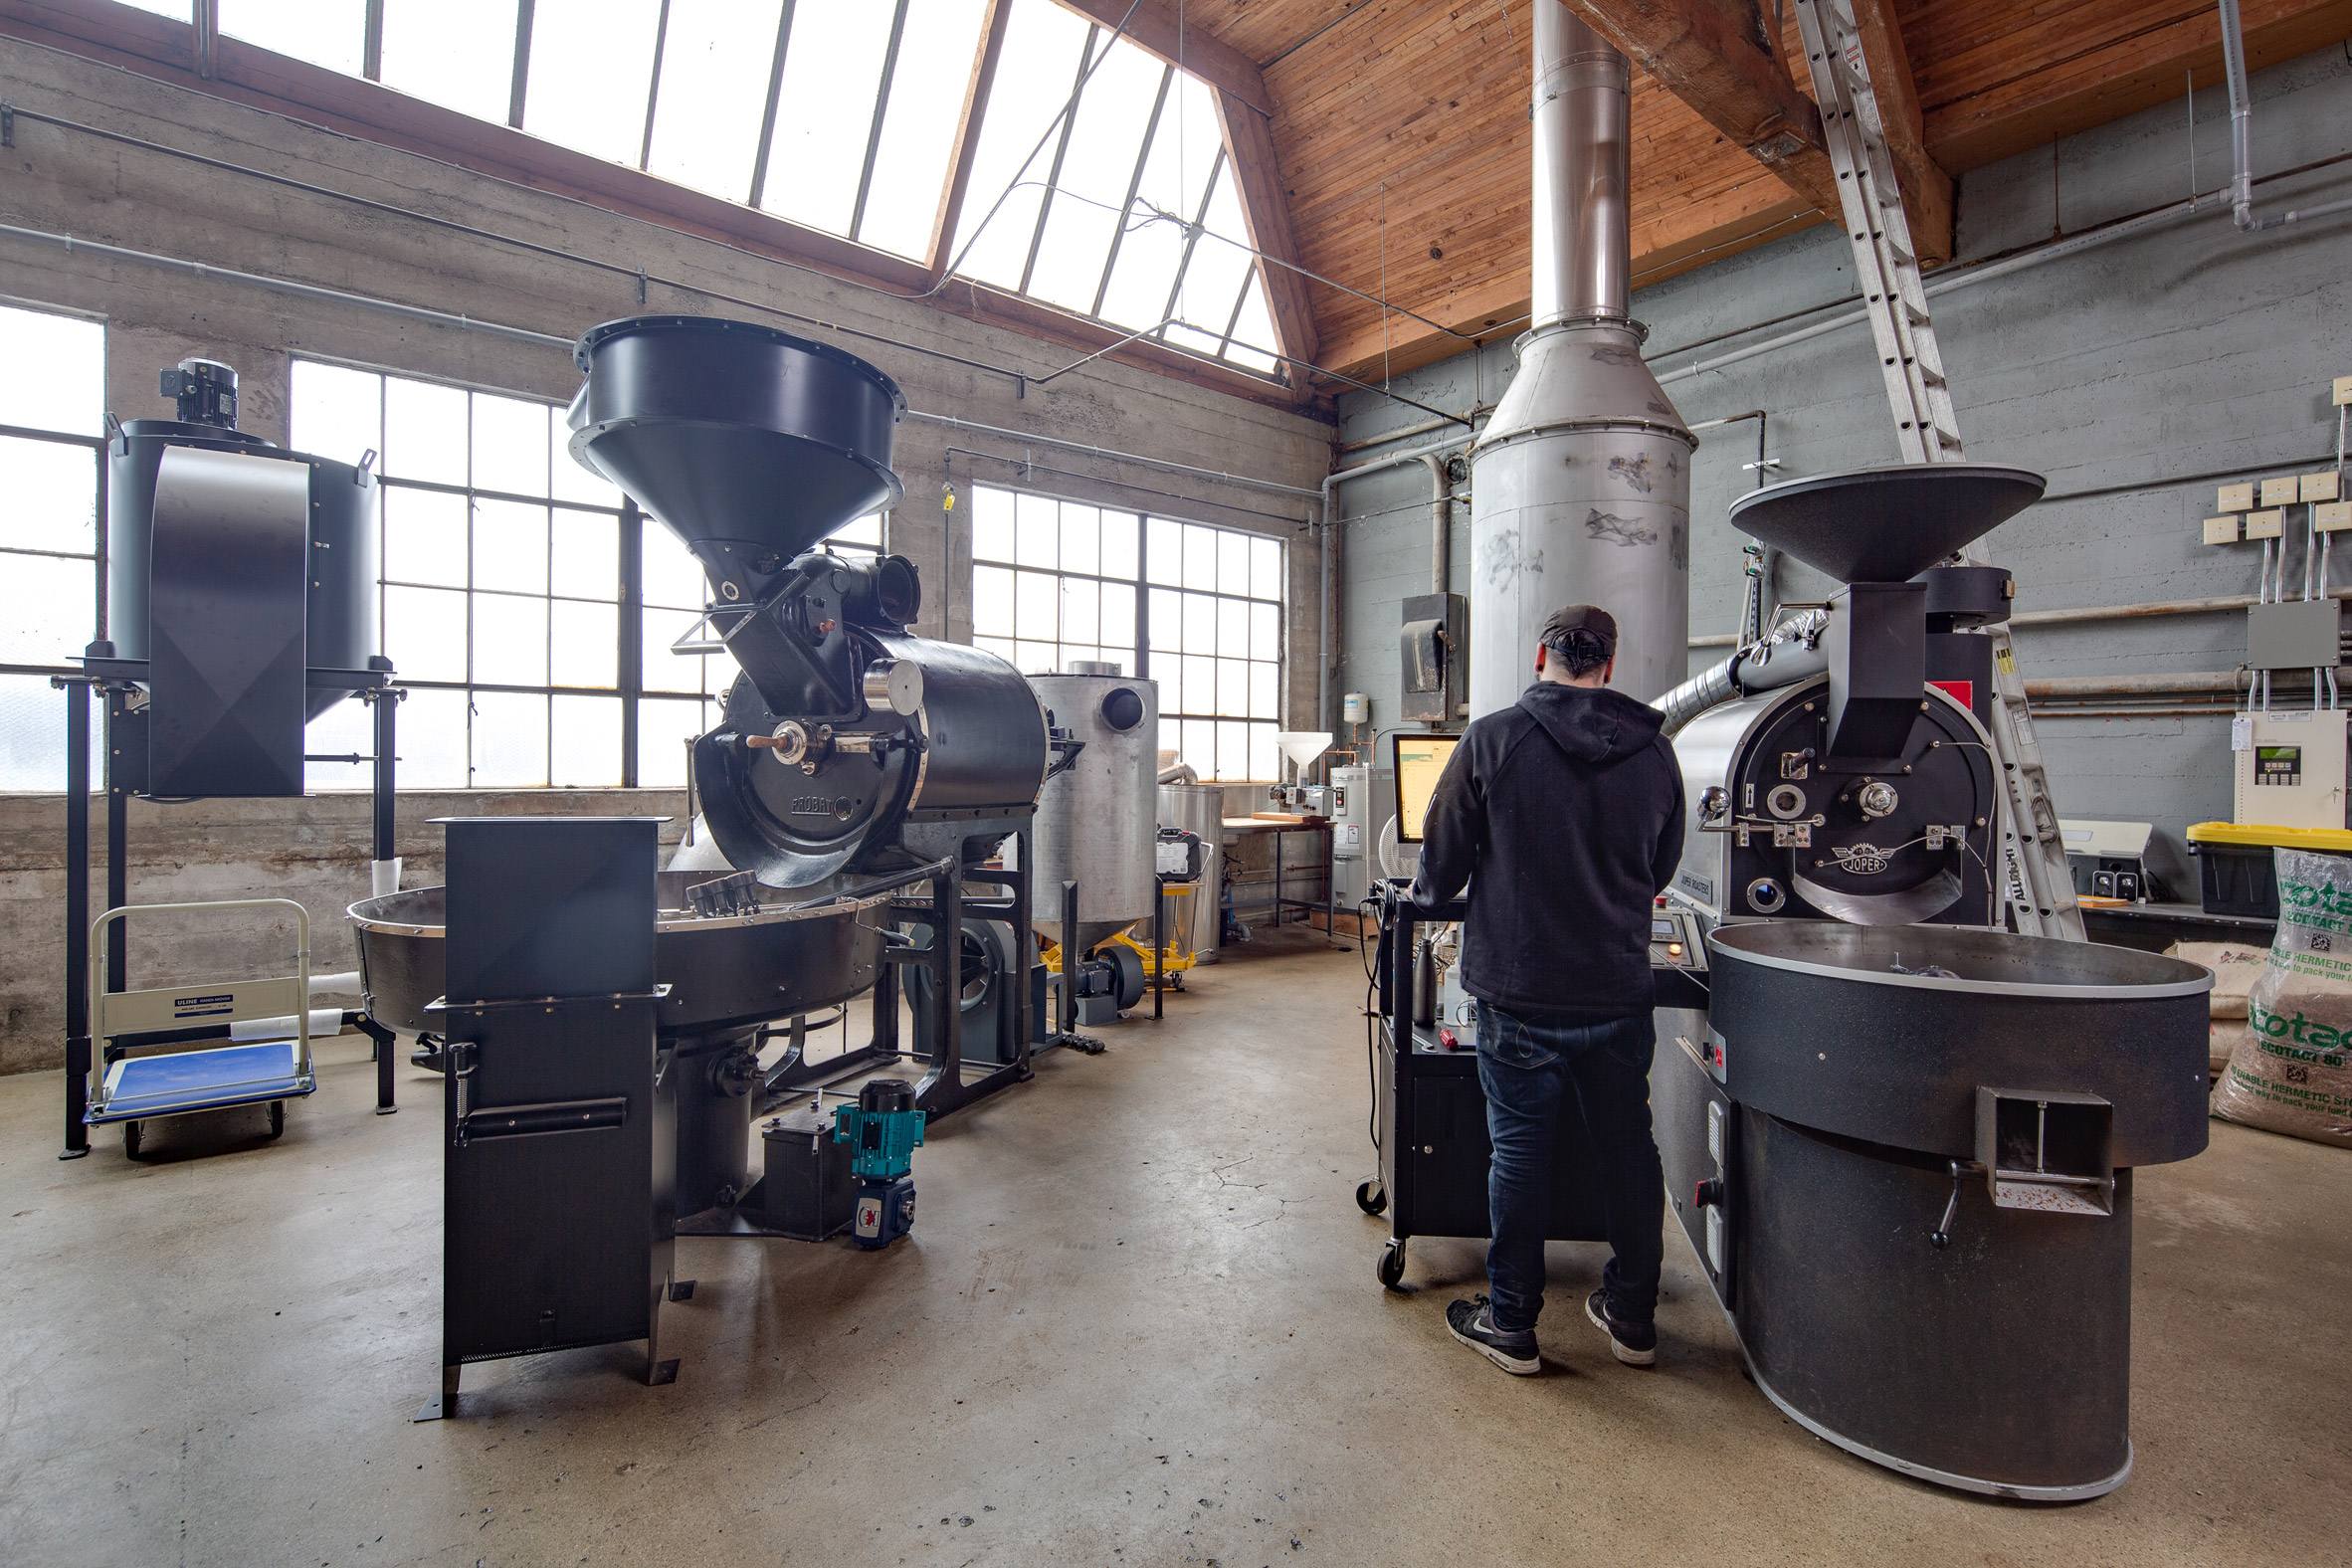 Roastery in Pallet Coffee Roasters HQ by Alice D'Andrea